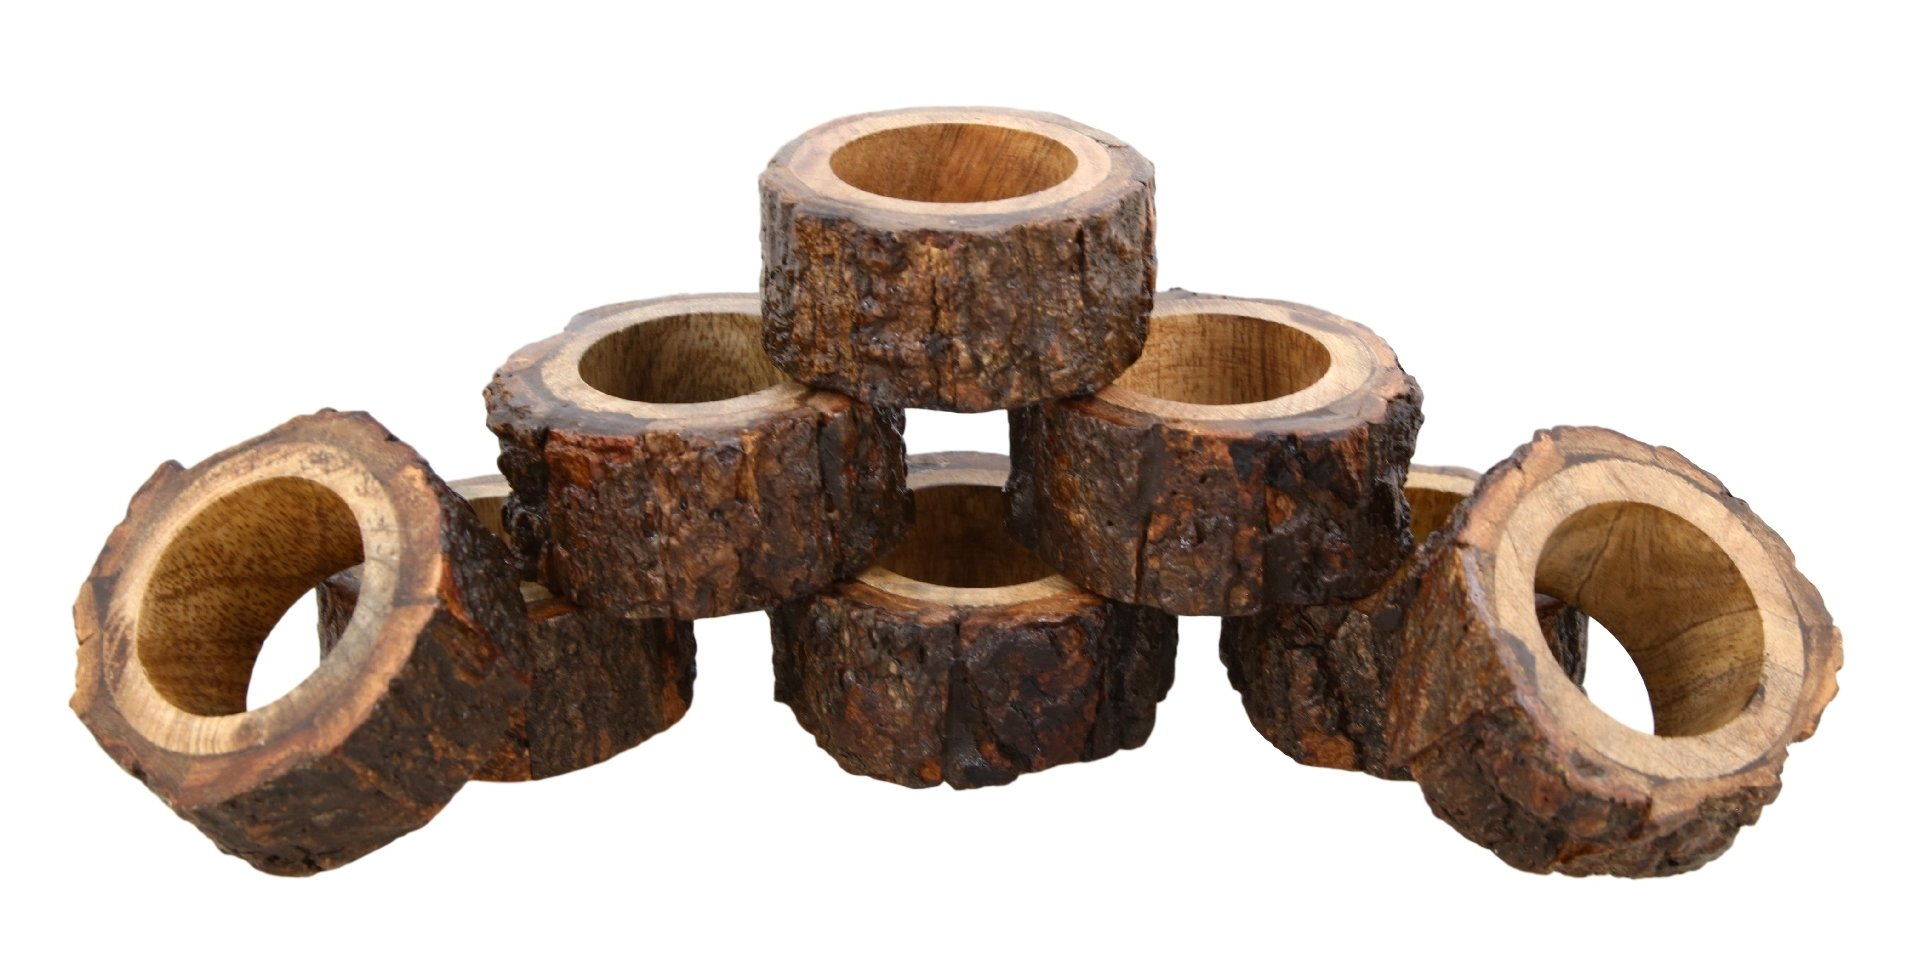 ShalinIndia Artisan Crafted Rustic Wood Napkin Rings Set of 8 for Dinner Table Decoration by ShalinIndia (Image #1)